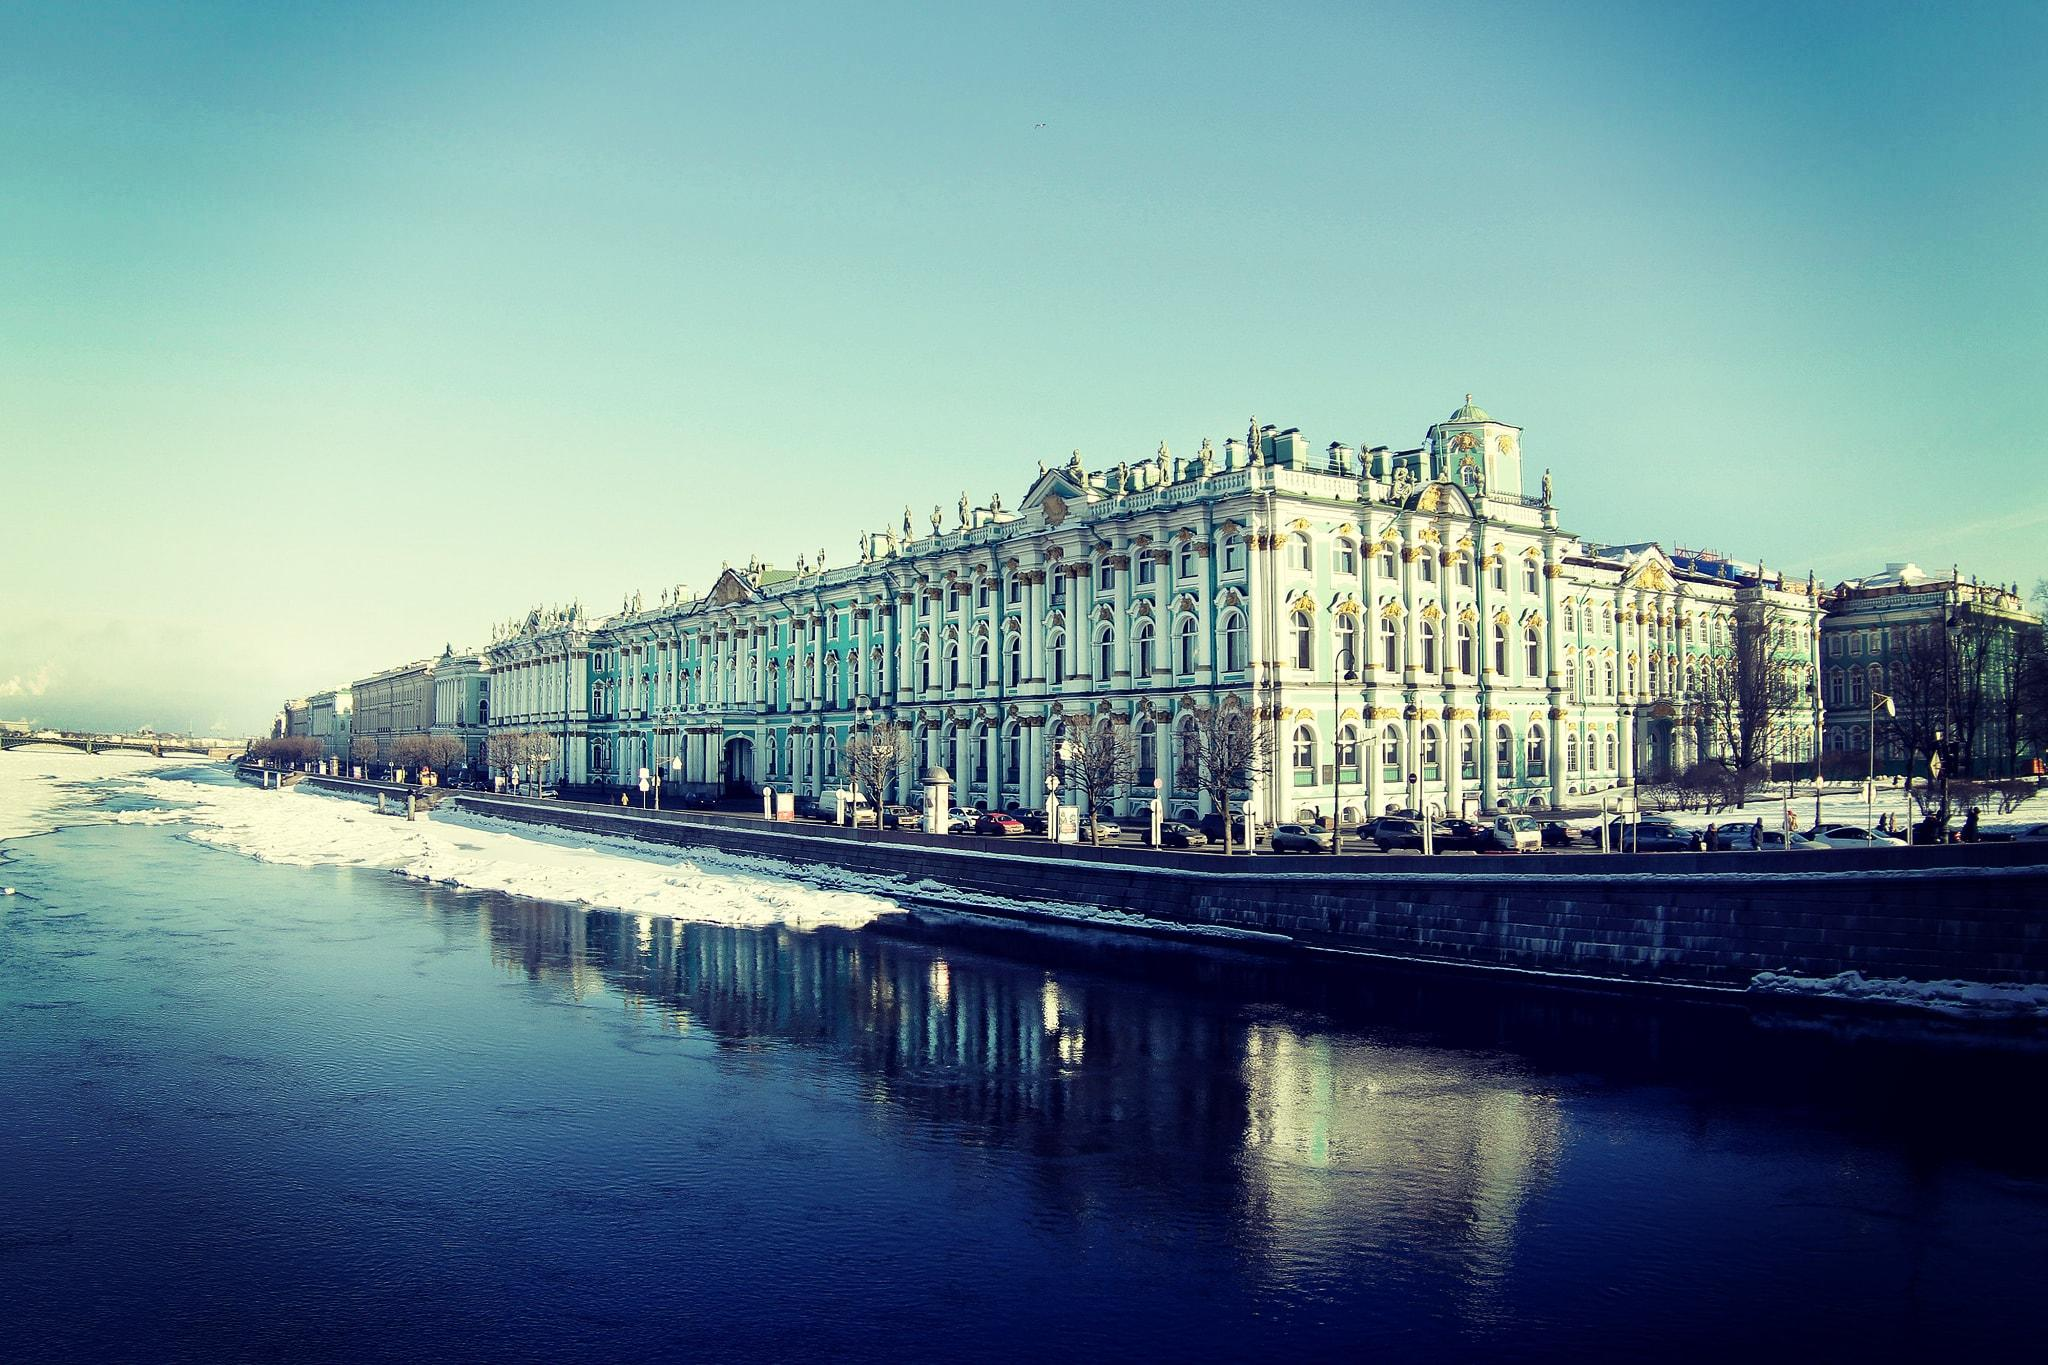 St. Petersburg HD Wallpapers | 7wallpapers.net